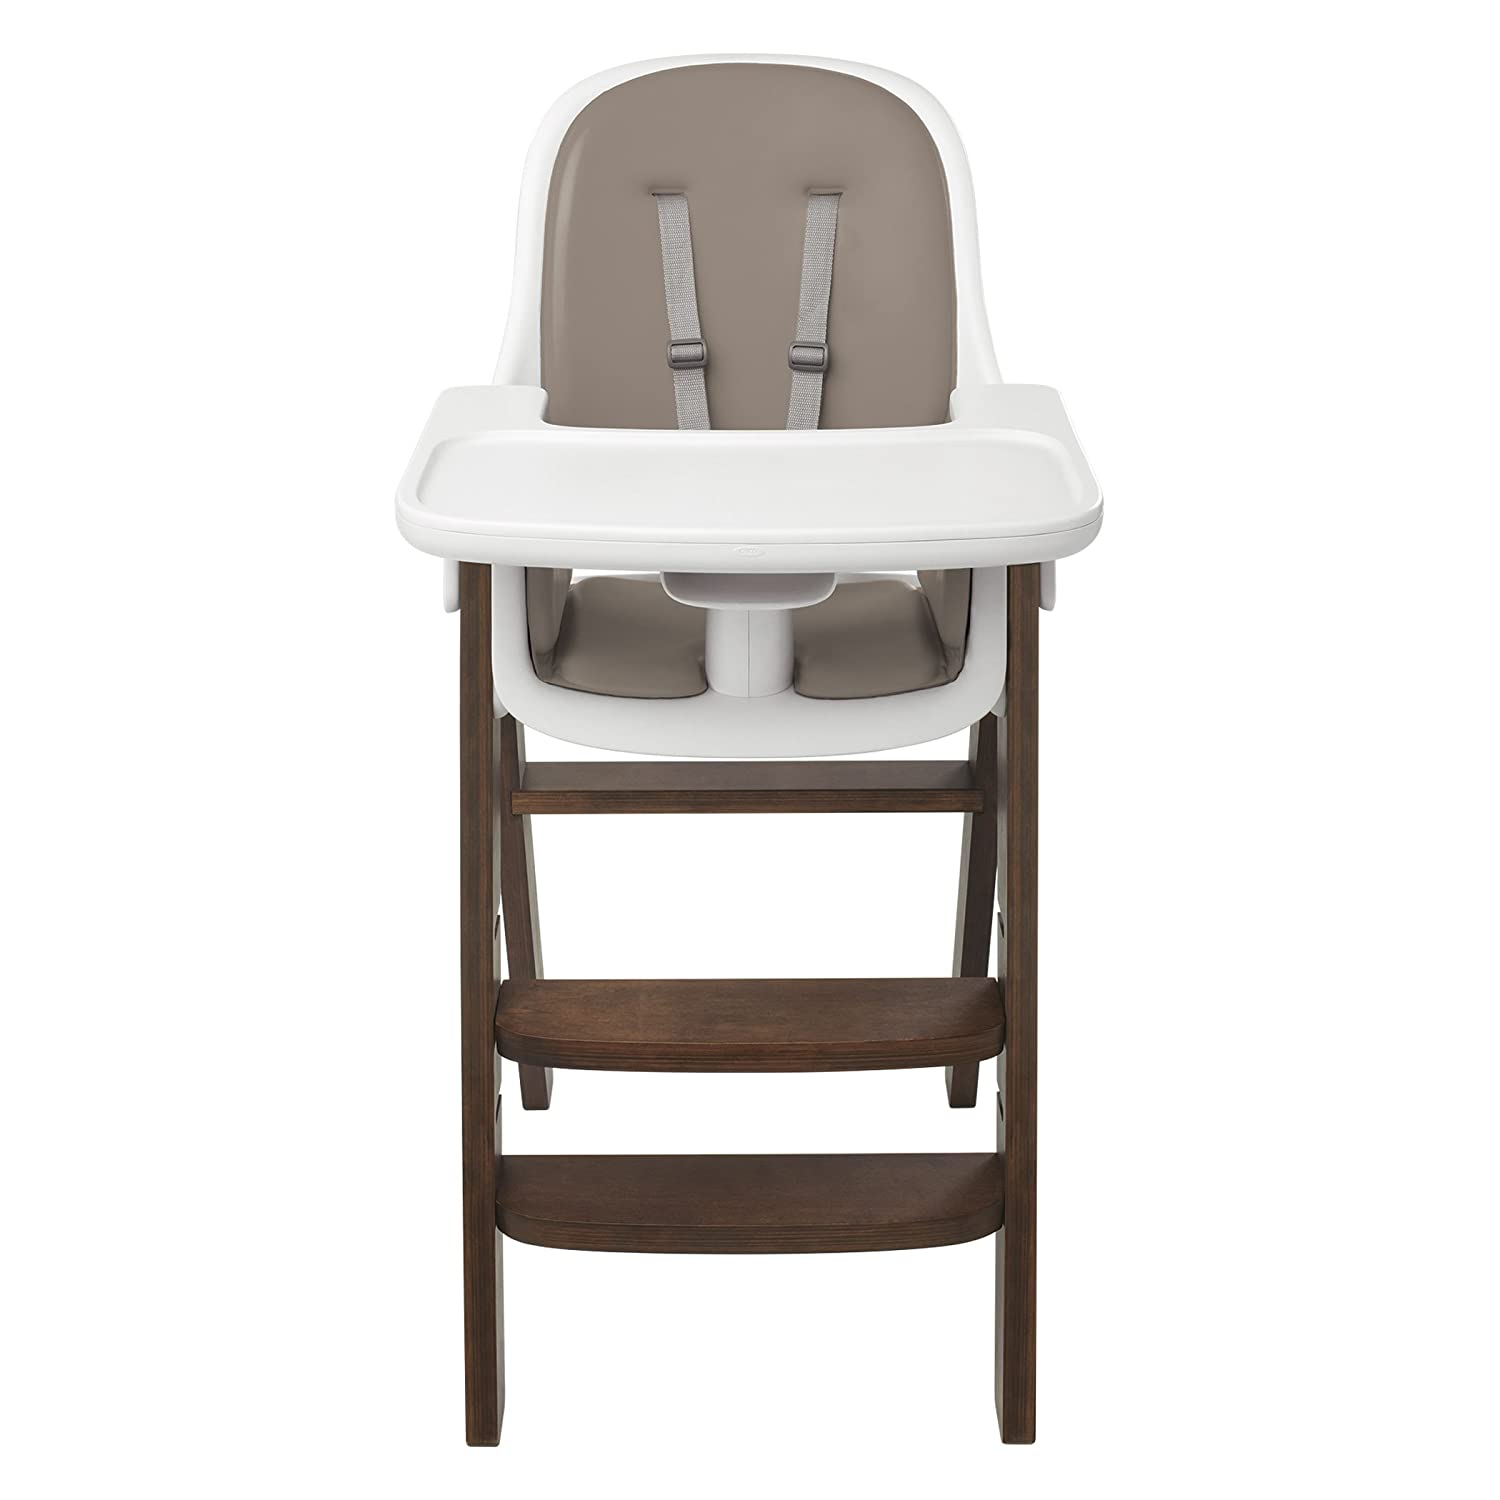 Adjustable High Chair Top 10 Best Baby Adjustable High Chairs 2016 2017 On Flipboard